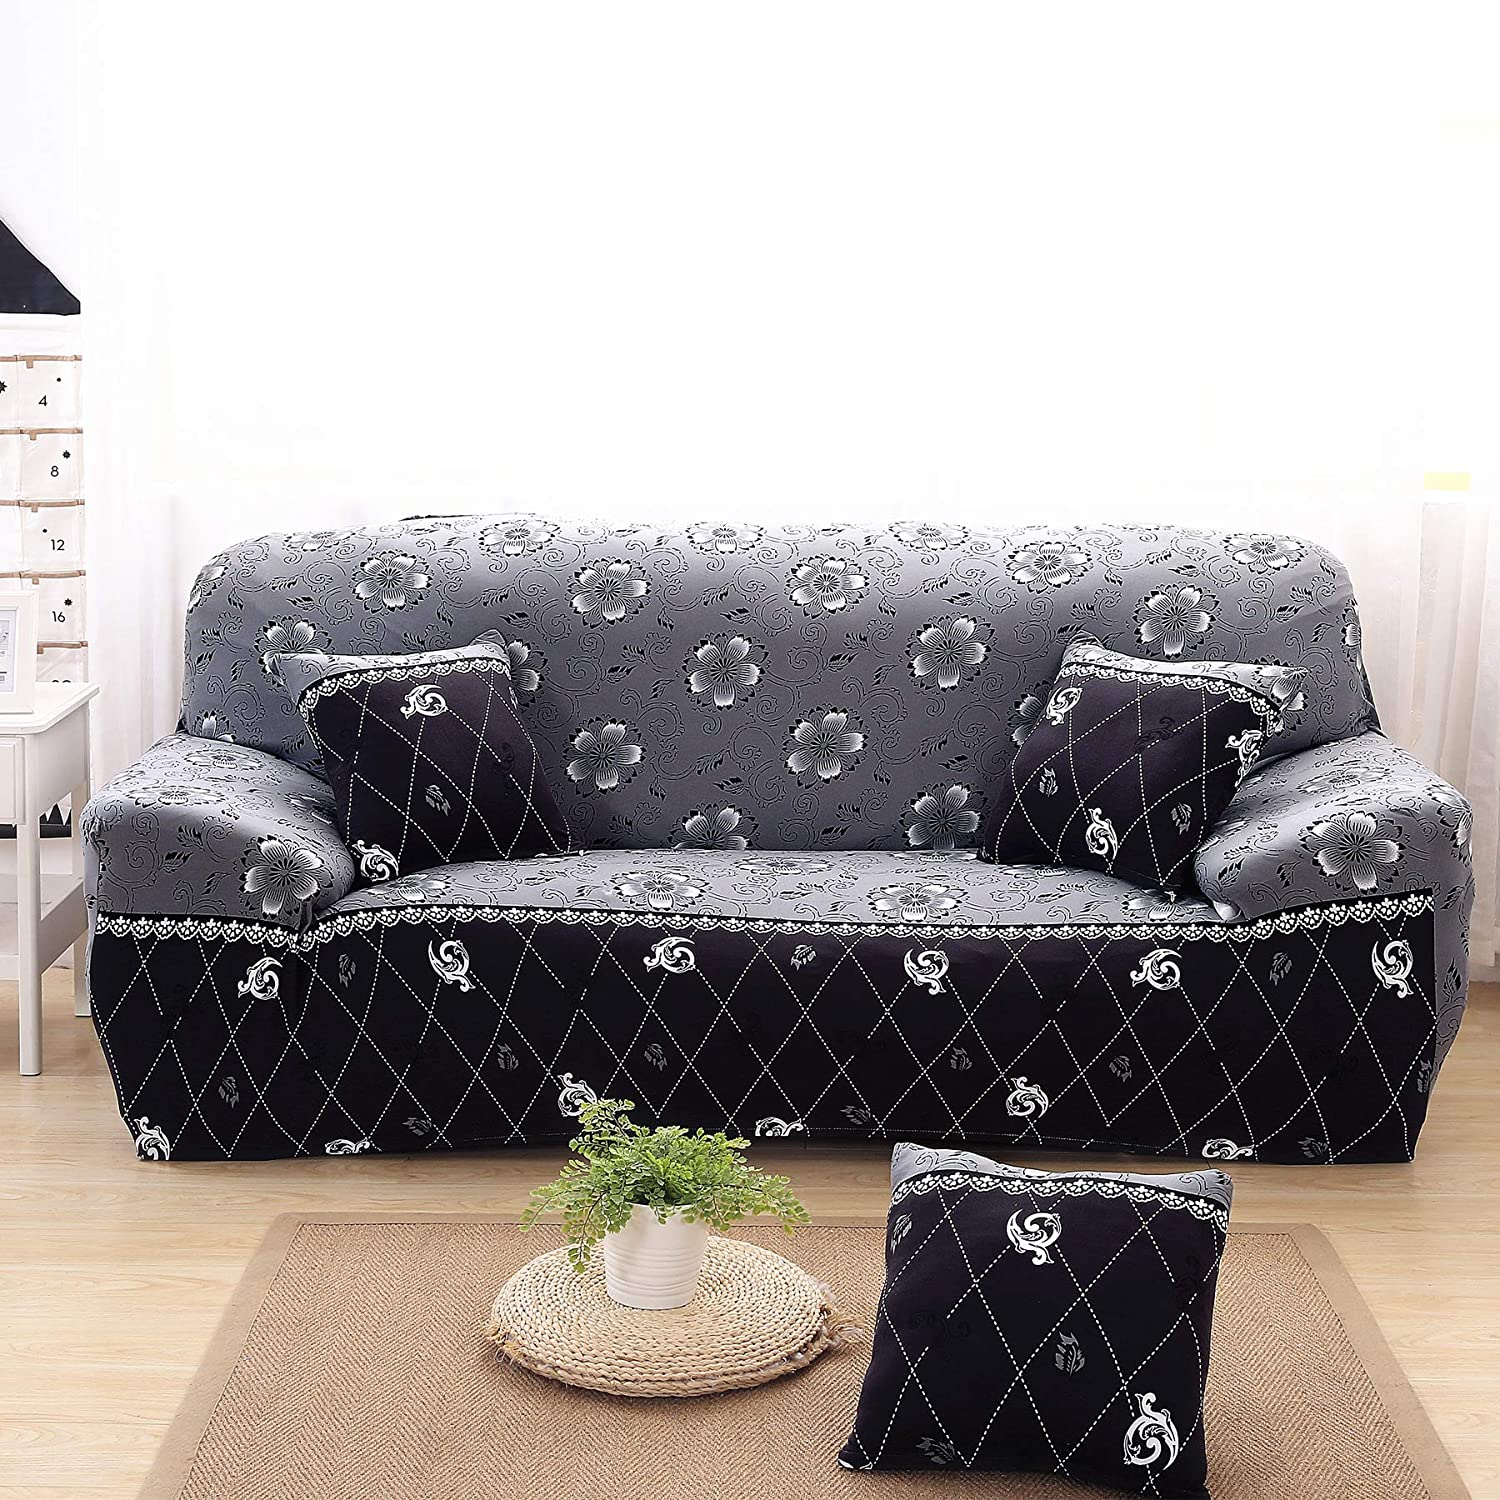 Enova Home Elegant Polyester And Spandex Stretch Fabric Washable Box Cushion Loveseat Slipcover Furniture Protector For Living Room Grey Flower Sofa Home Kitchen